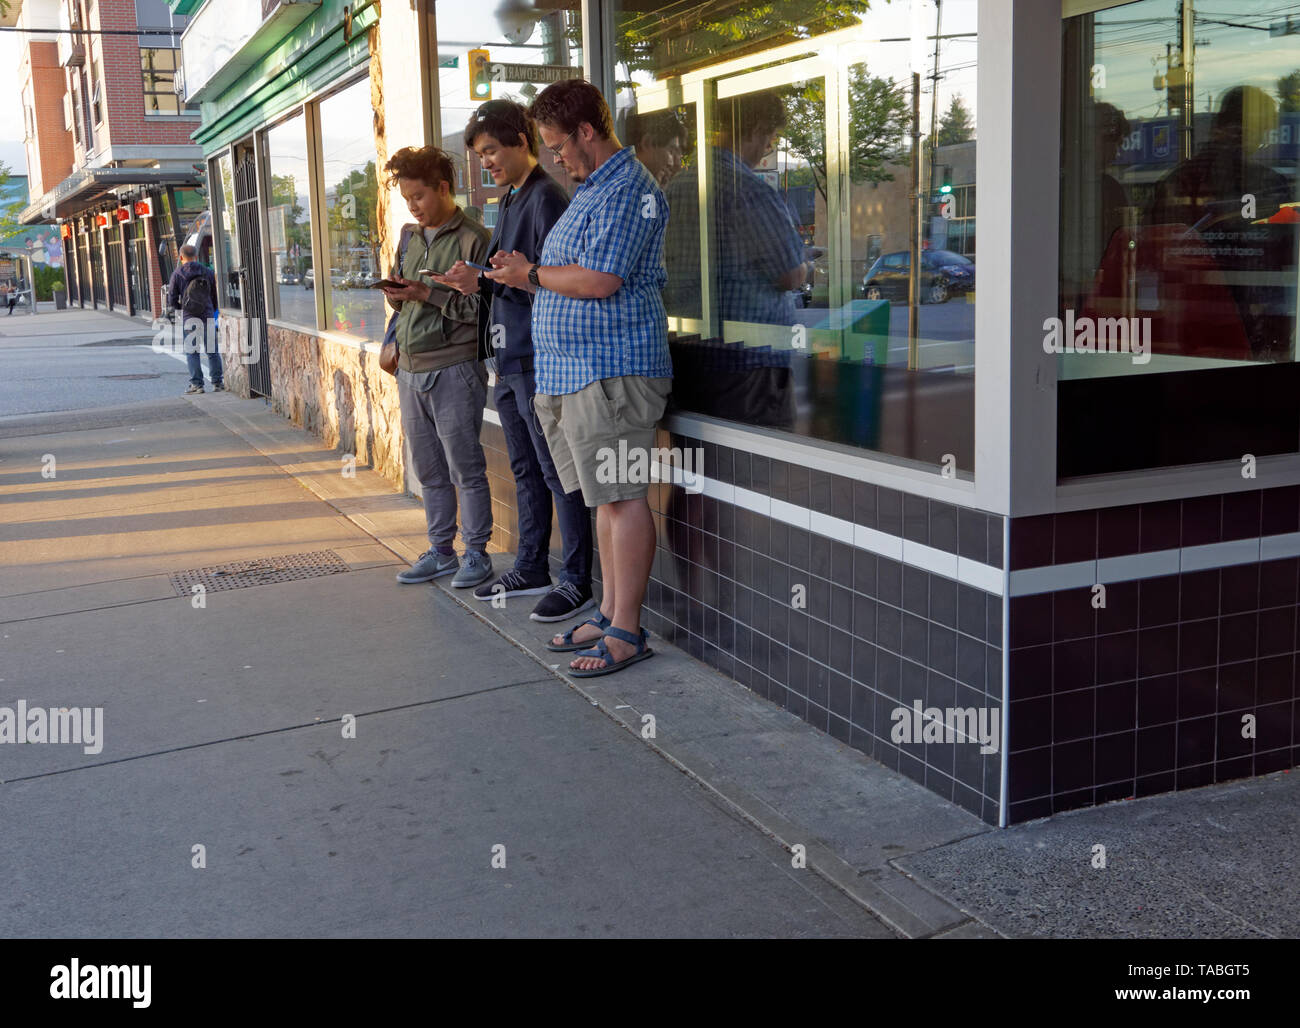 Three young men using their mobile cell phones while standing on the sidewalk, Main Street, Vancouver, BC, Canada - Stock Image